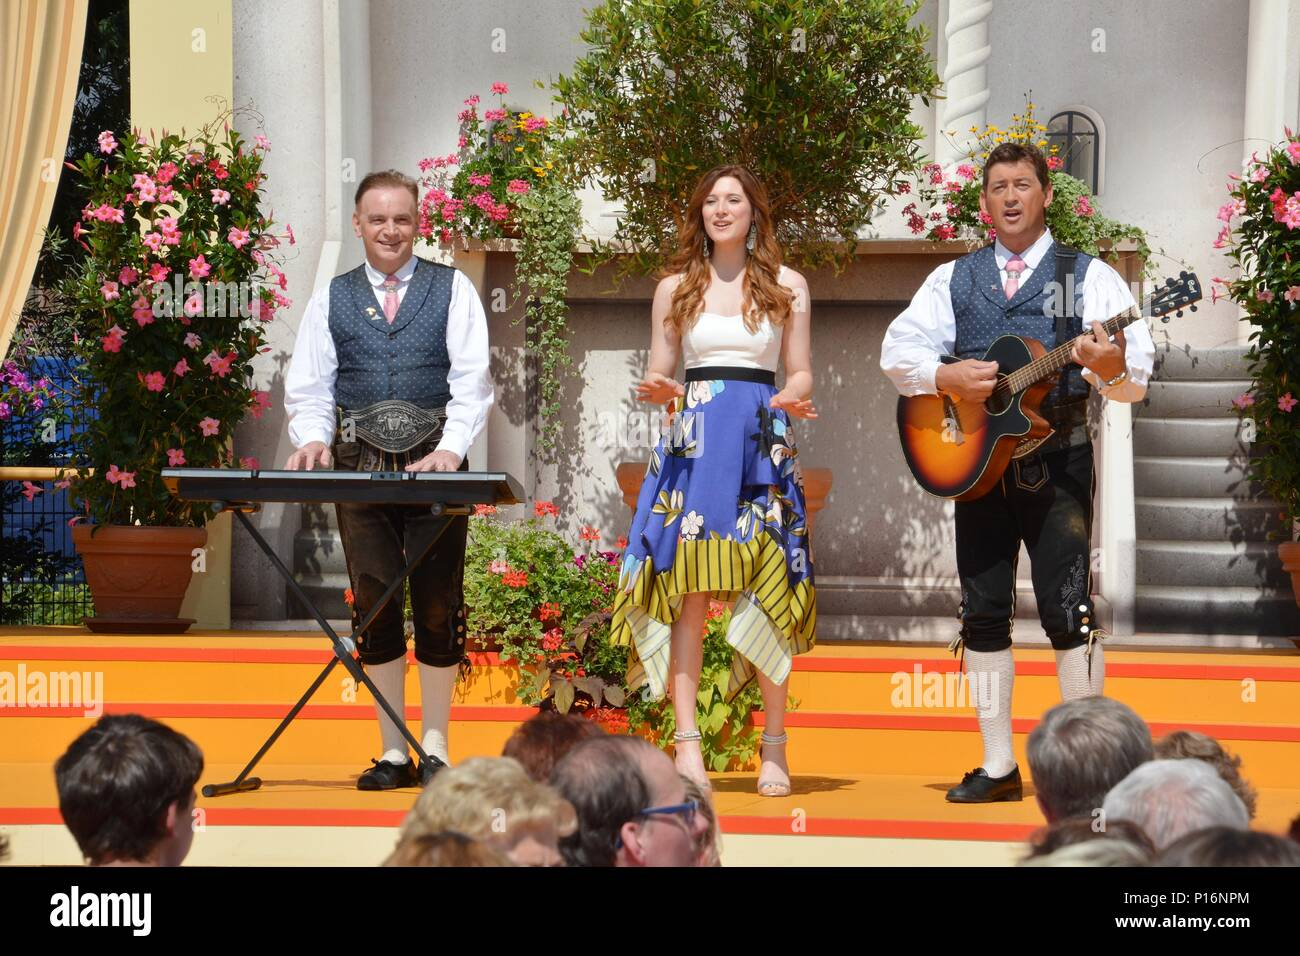 Rust, Germany, 10th June, 2018, ARD TV-Show 'Immer wieder Sonntags' mit Stefan Mross, Die Ladiner and Nicol Stuffer, Credit: mediensegel/Alamy Live News - Stock Image